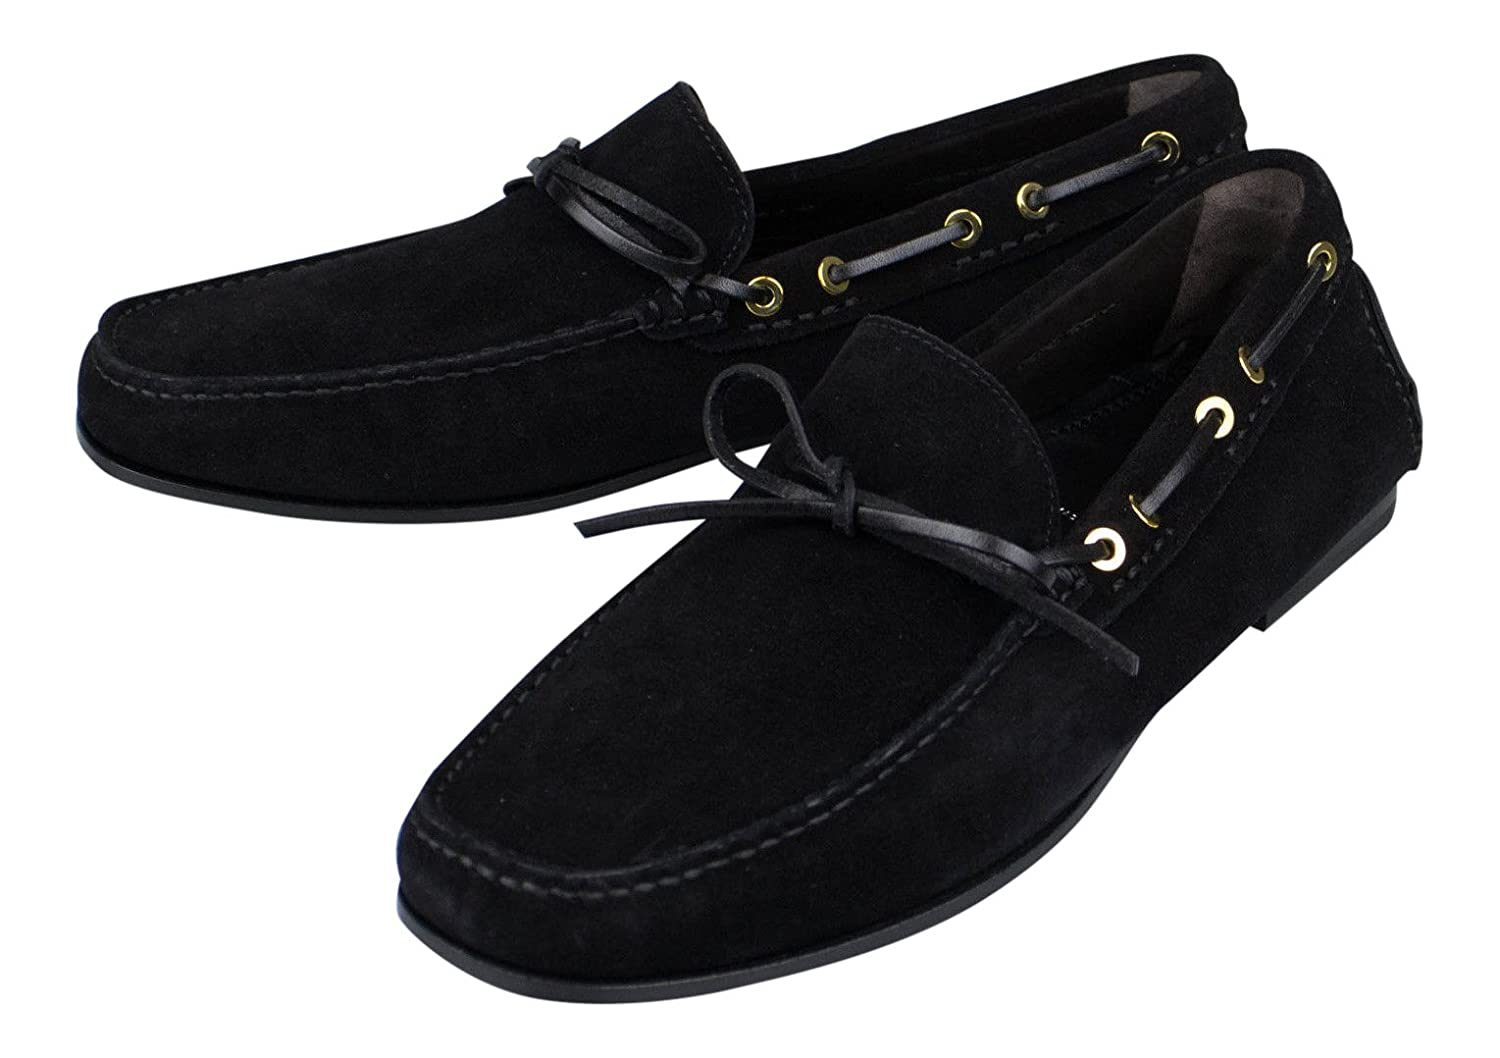 af60ecdf63d Amazon.com  TOM FORD Black Suede Leather Loafers Boat Shoes Size 9.5 US  42.5 EU D  Sports   Outdoors